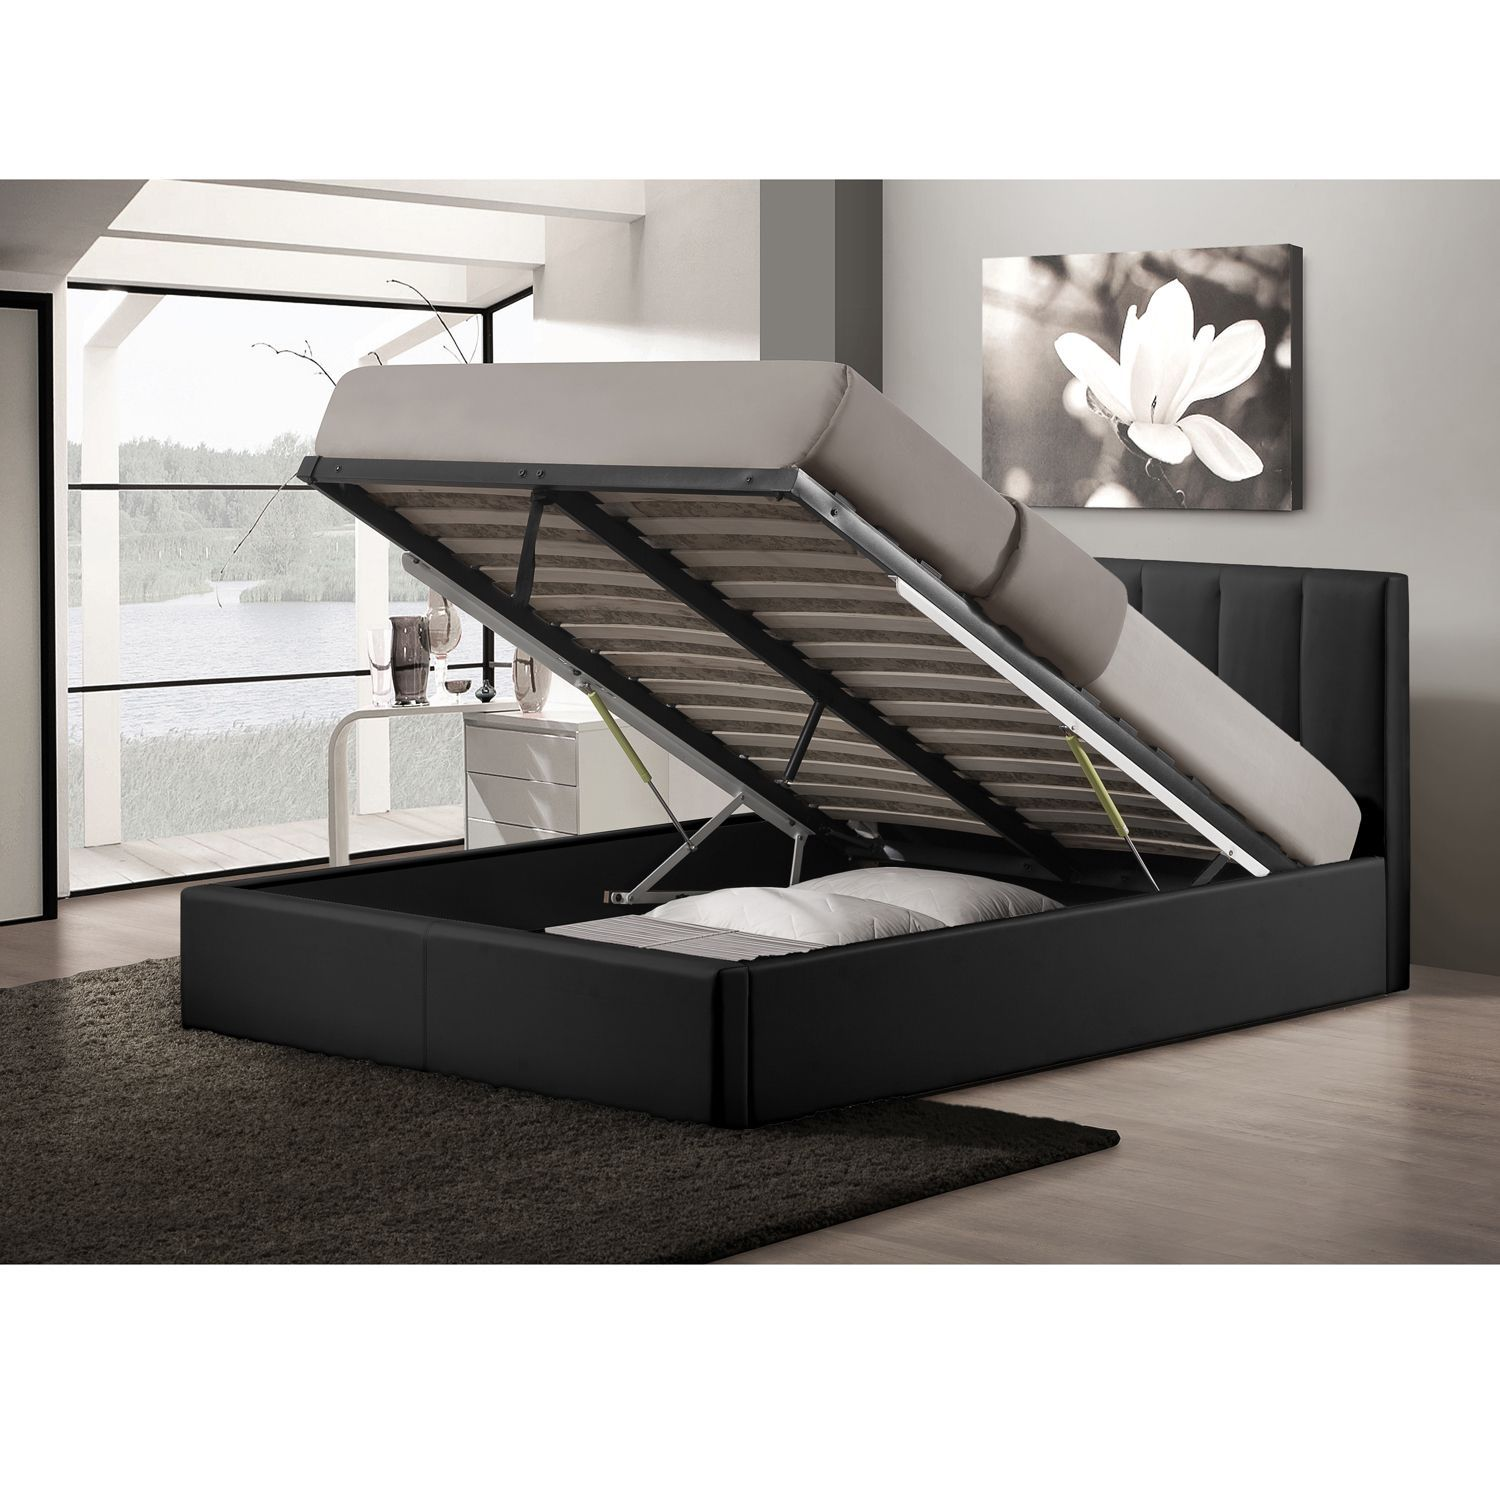 Gas Lift Queen Beds Templemore Black Leather Contemporary Queen Size Gas Lift